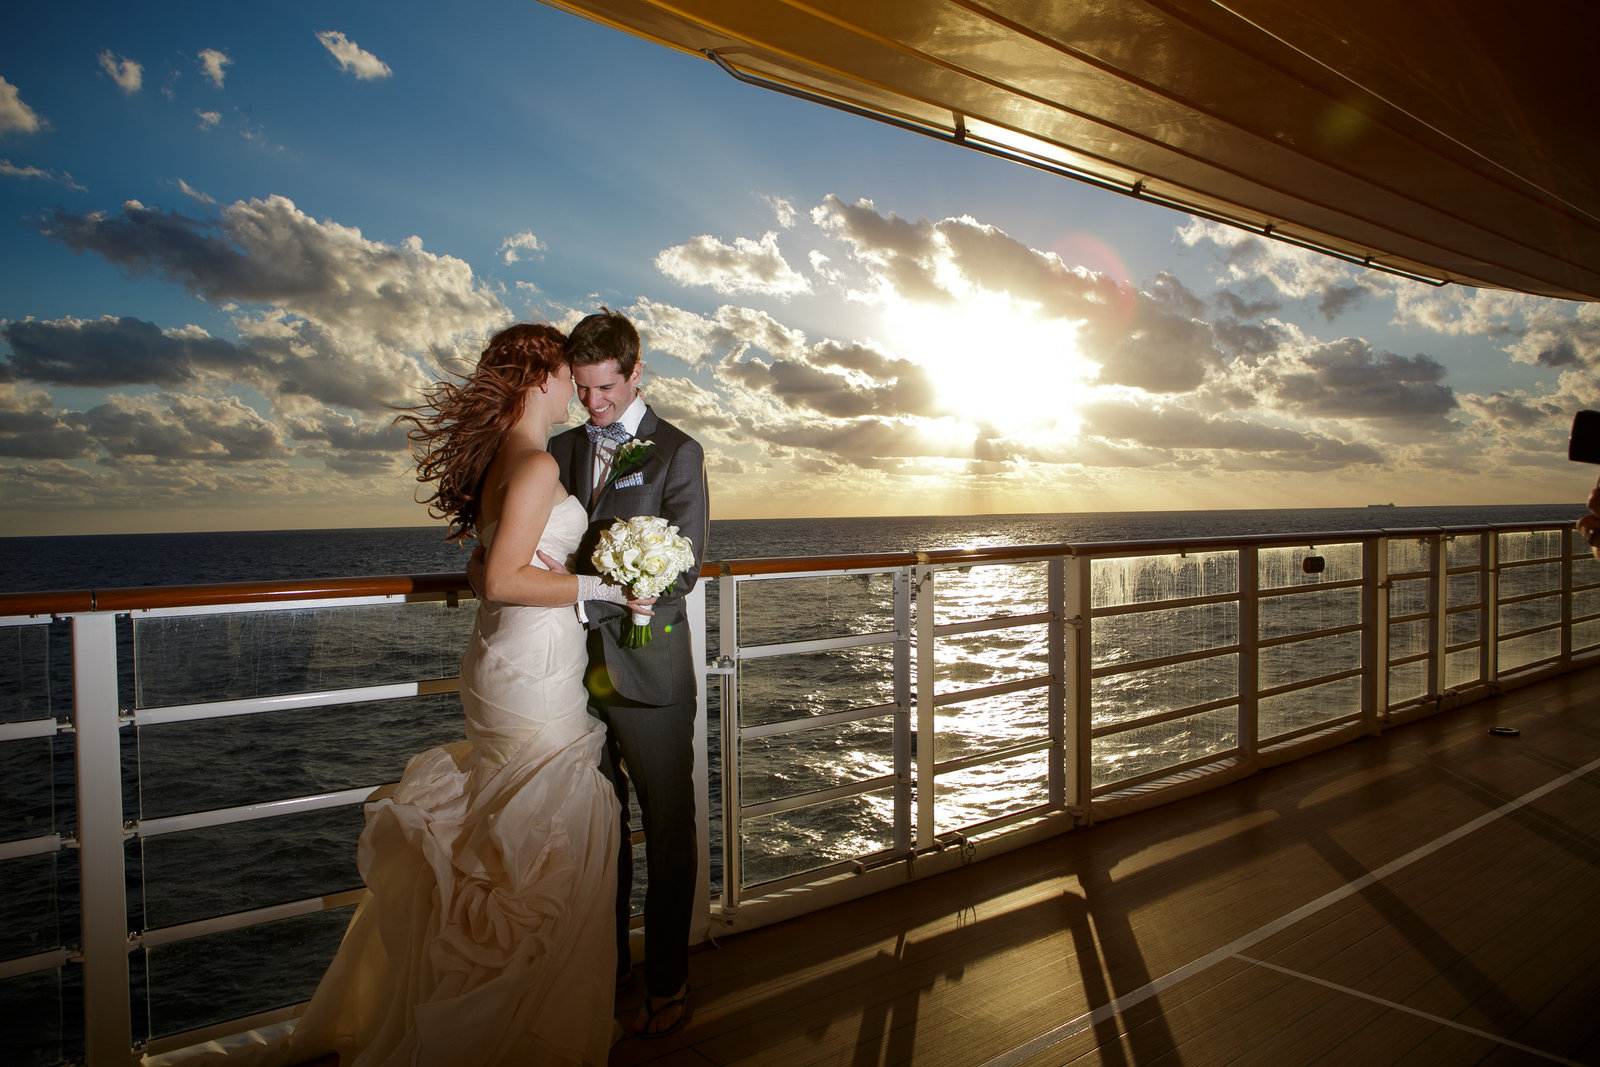 Disney-Dream-Cruise-Wedding-11